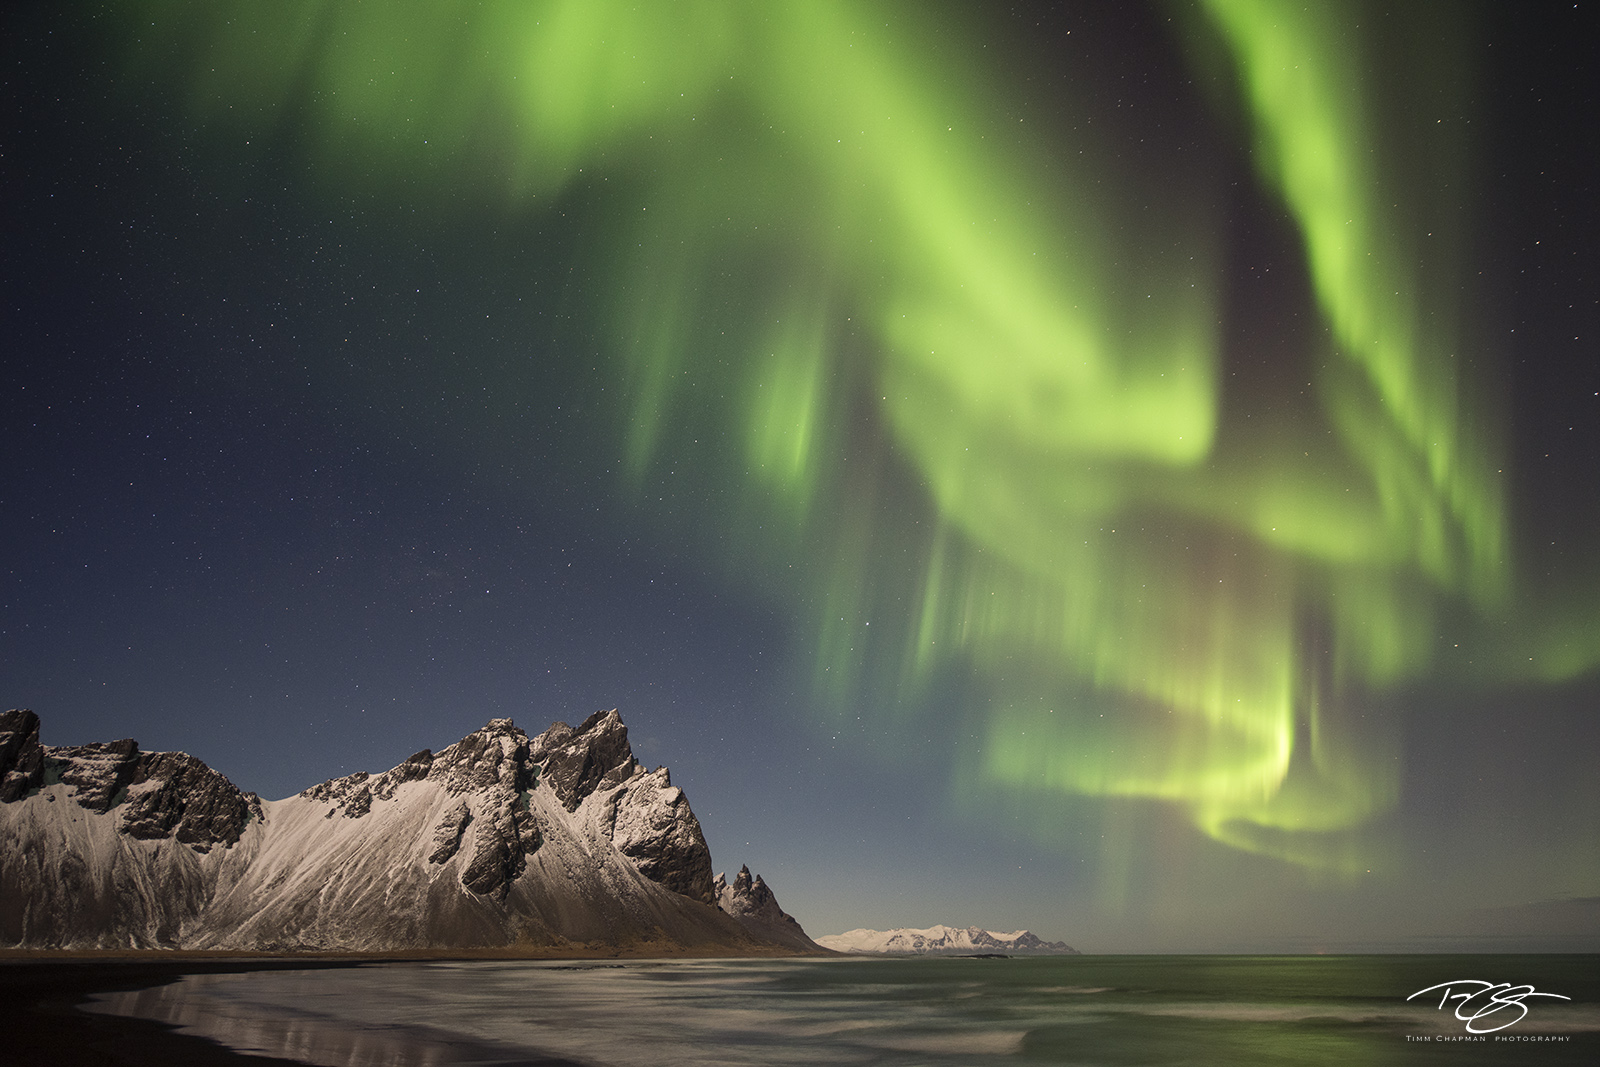 Iceland, aurora, borealis, green, Vestrahorn, stars, northern lights, spirit, coronal mass ejection, solar flare, energy, nordic, arctic, stokksnes, vesturhorn, reflection, mountains